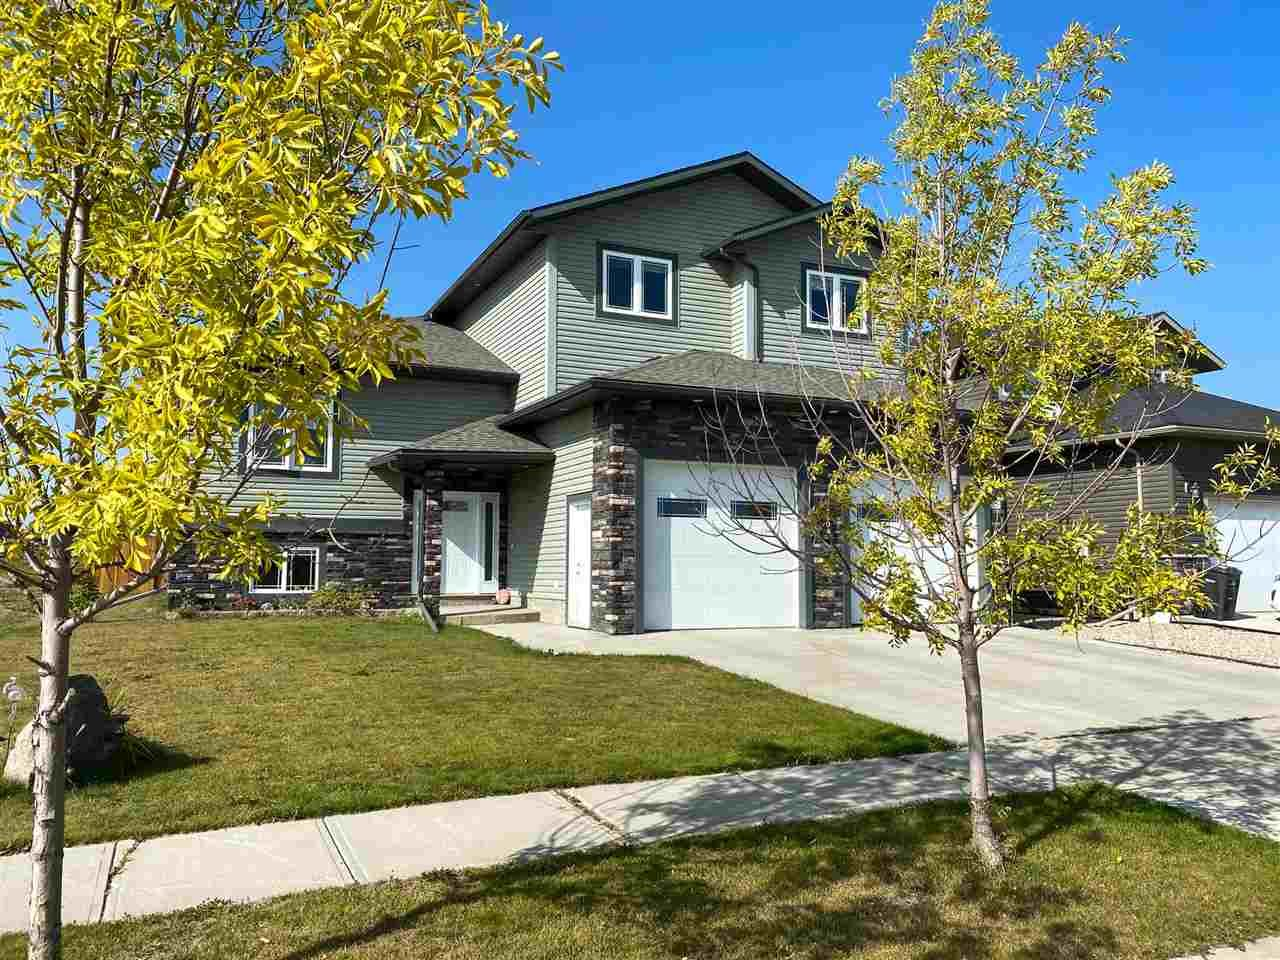 Main Photo: 1404 Wildrye Crescent: Cold Lake House for sale : MLS®# E4215112